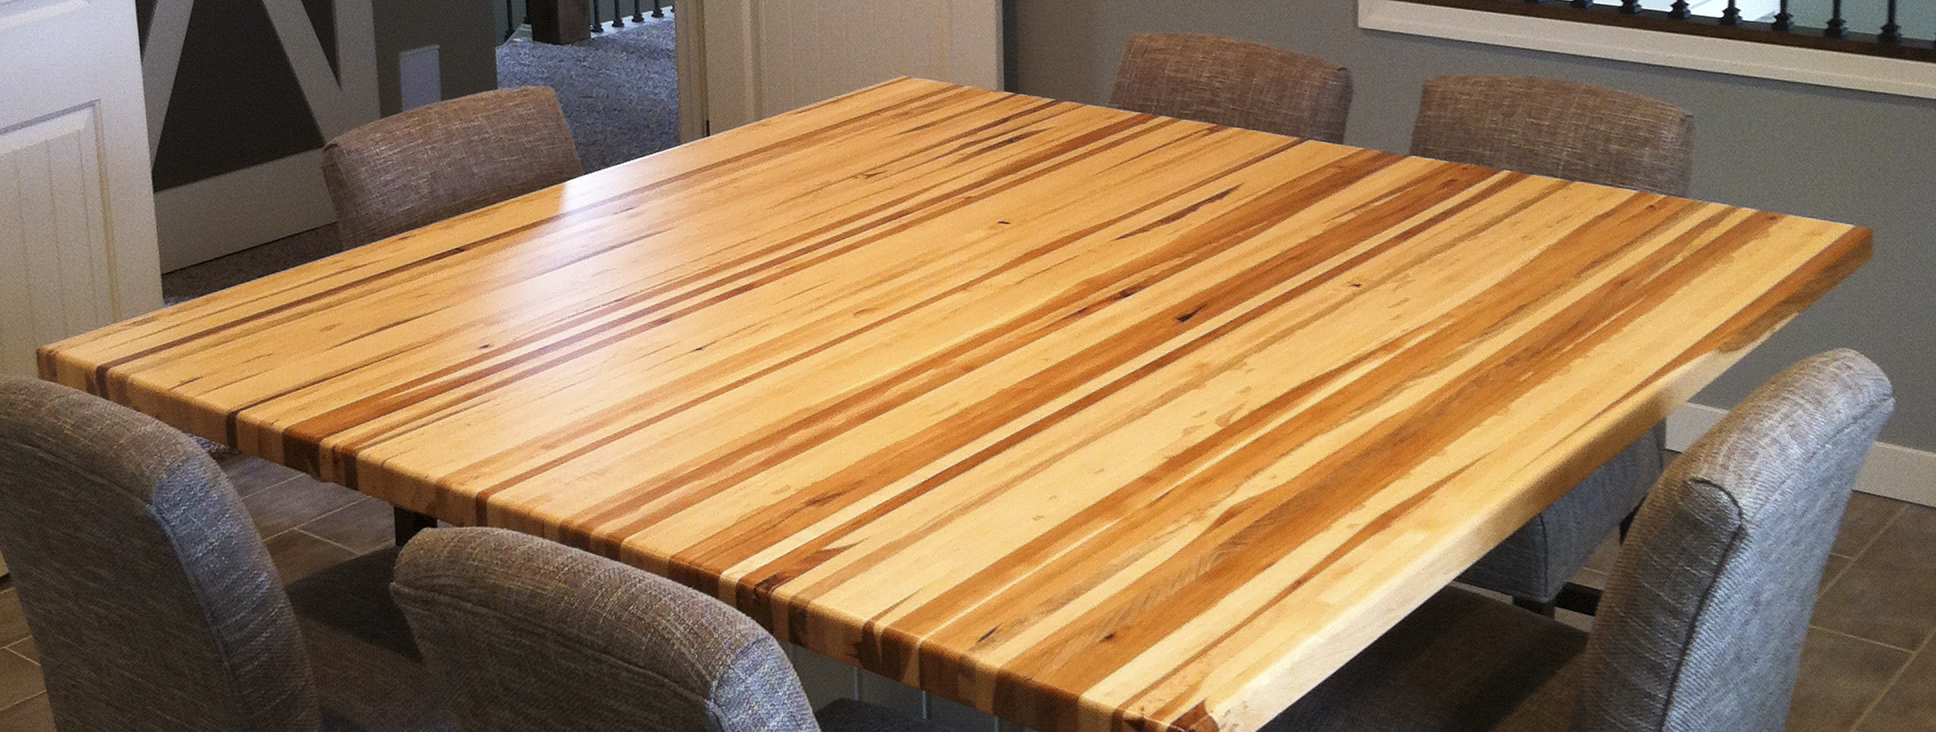 McClure Block Butcher Block And Hardwood KItchen Counter Tops And ...